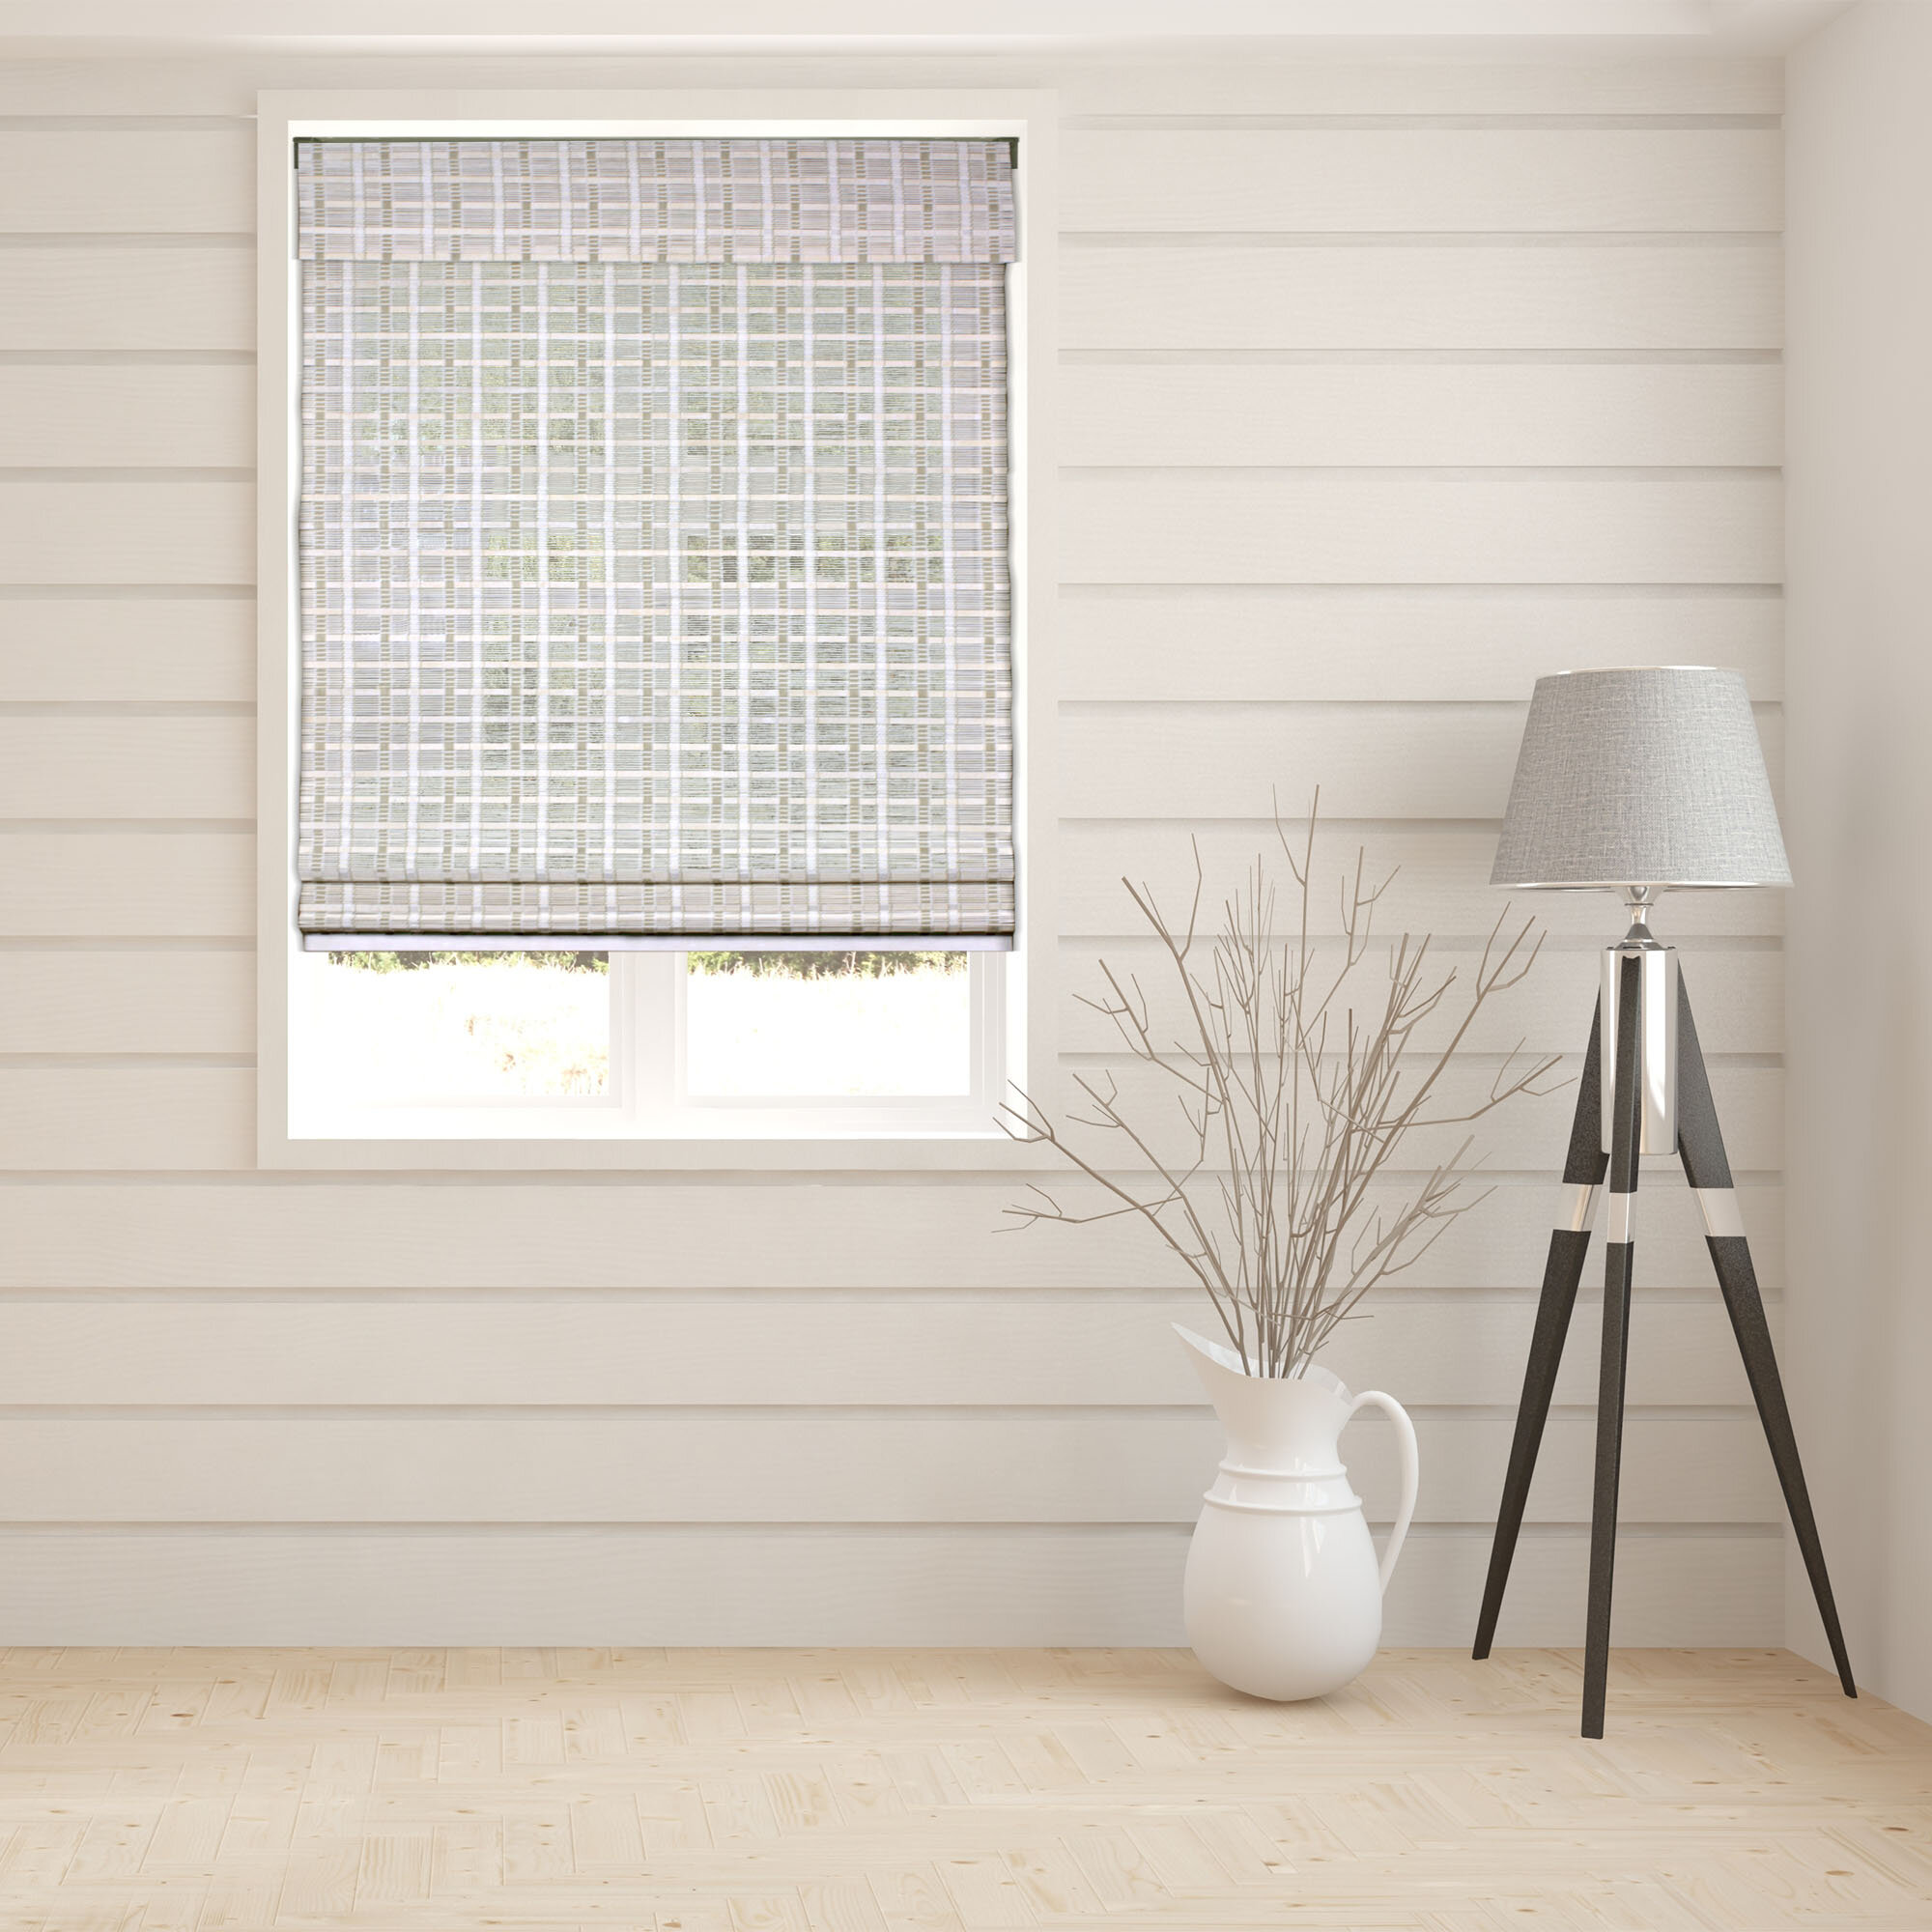 penney furniture pin jc the overstock blinds store oriental clockwise from left shade top